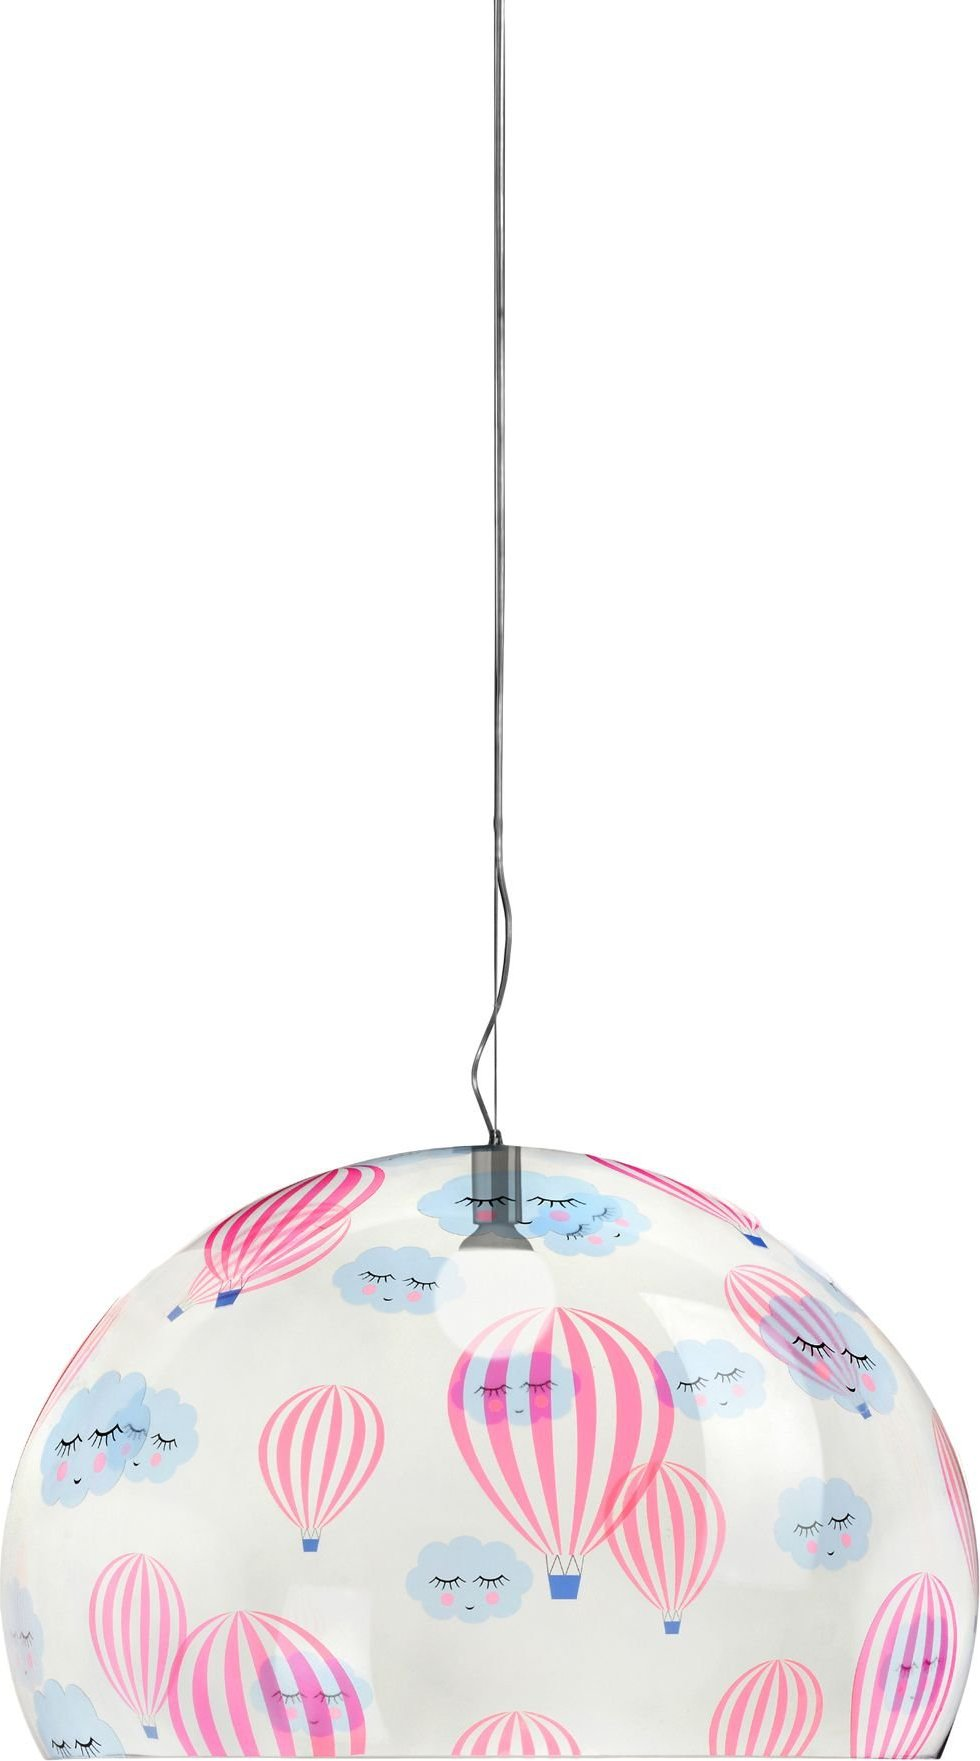 Lampa Fly Kids transparentna w balony